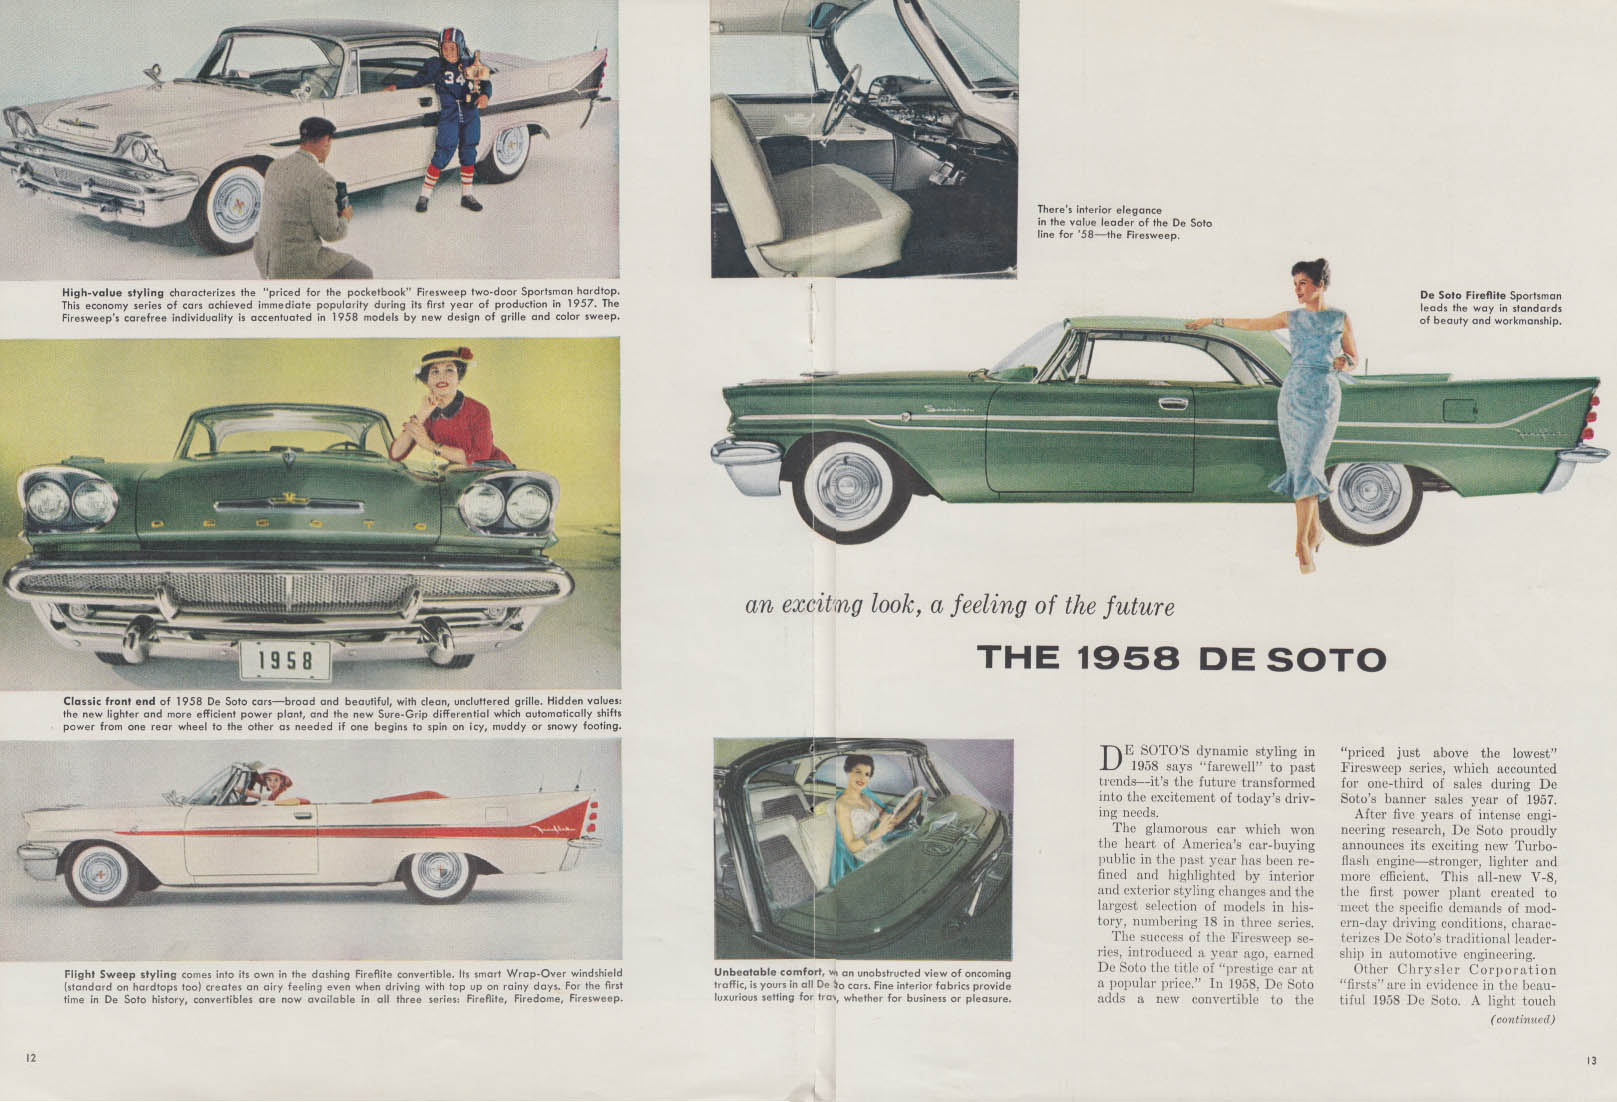 An exciting look a feling of the future De Soto ad 1958